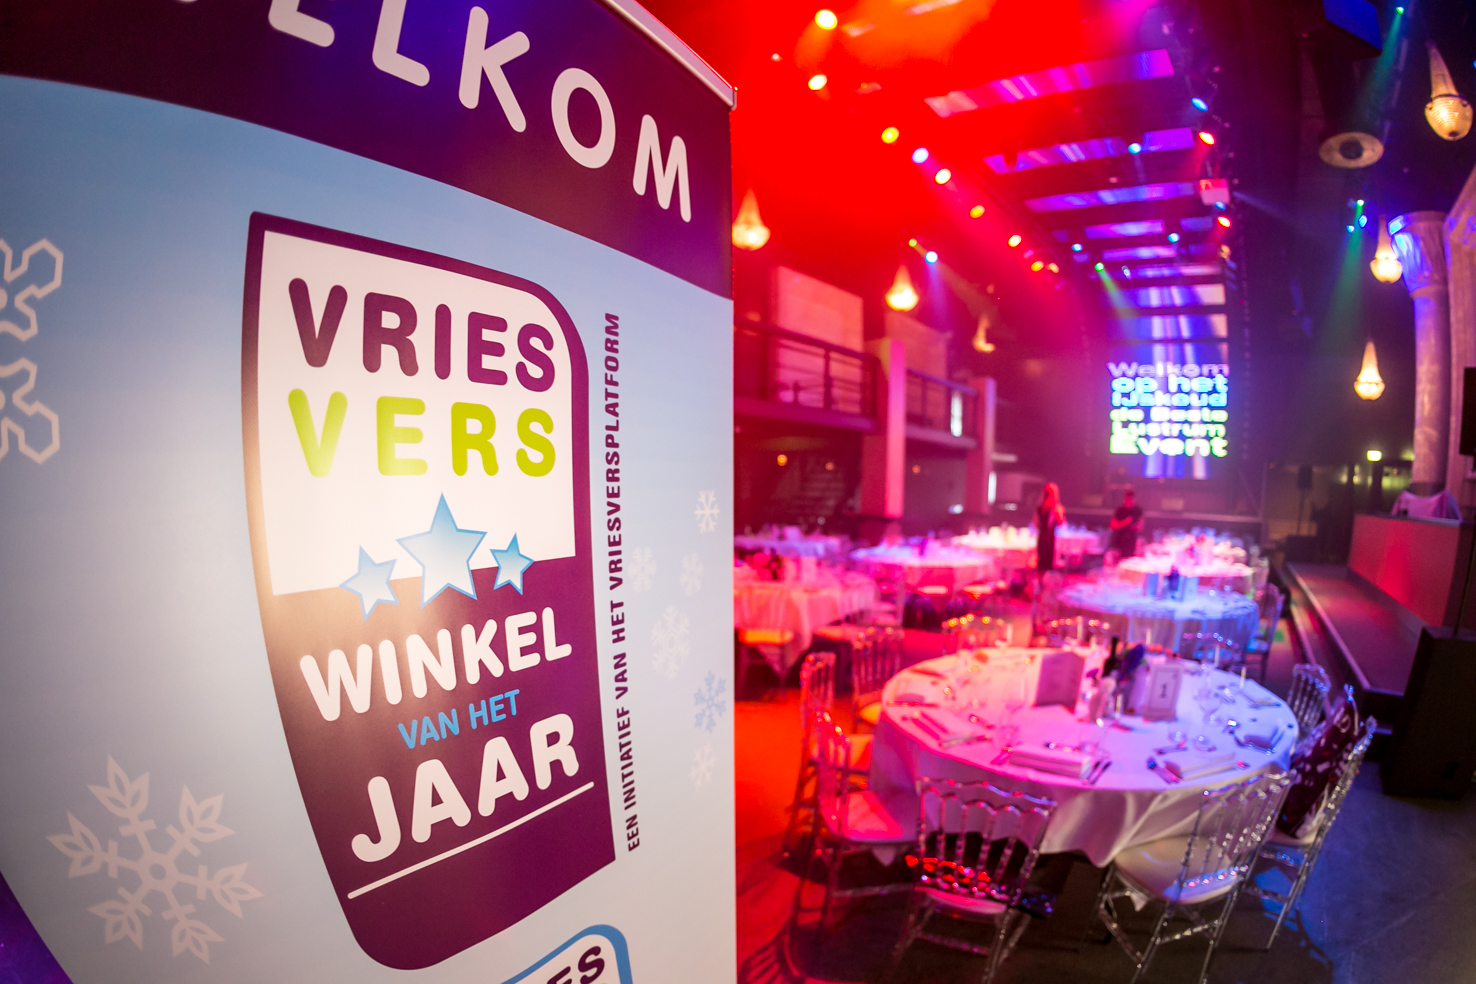 WinnaarsEvent VriesVers Platform 2017